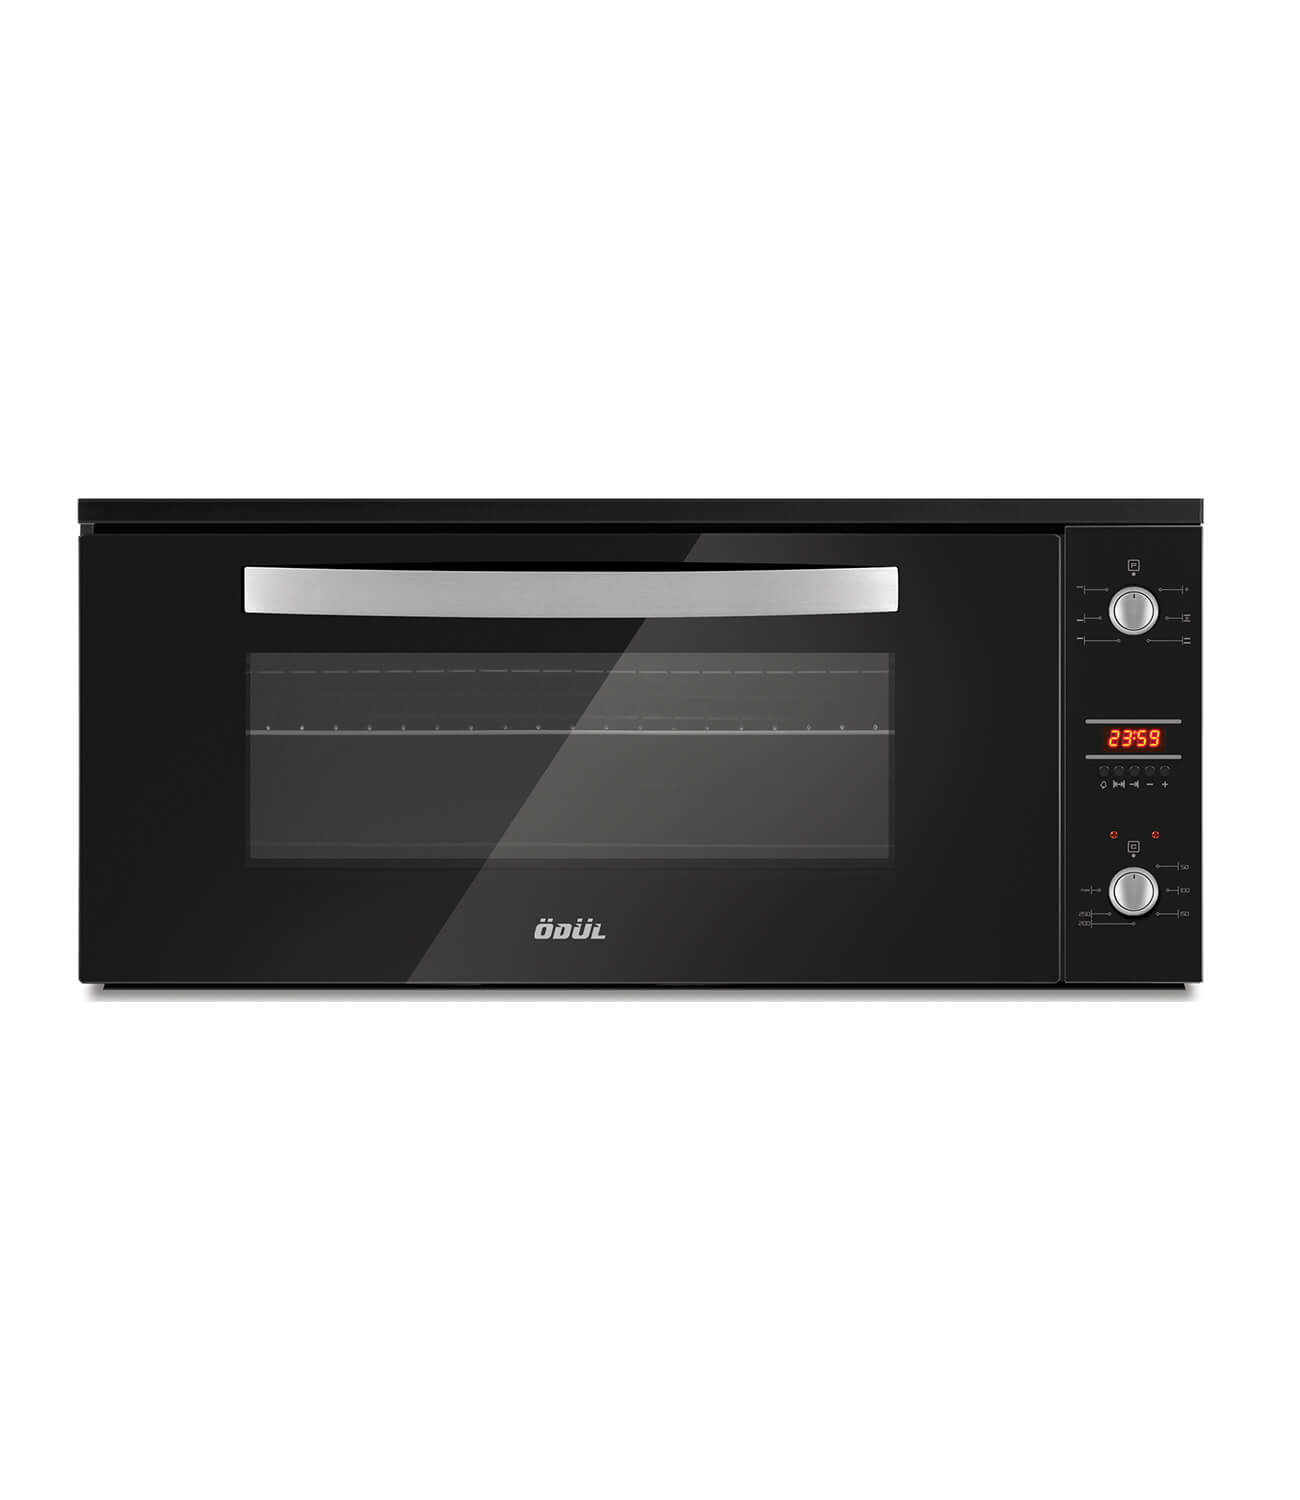 BO-90 electrical oven